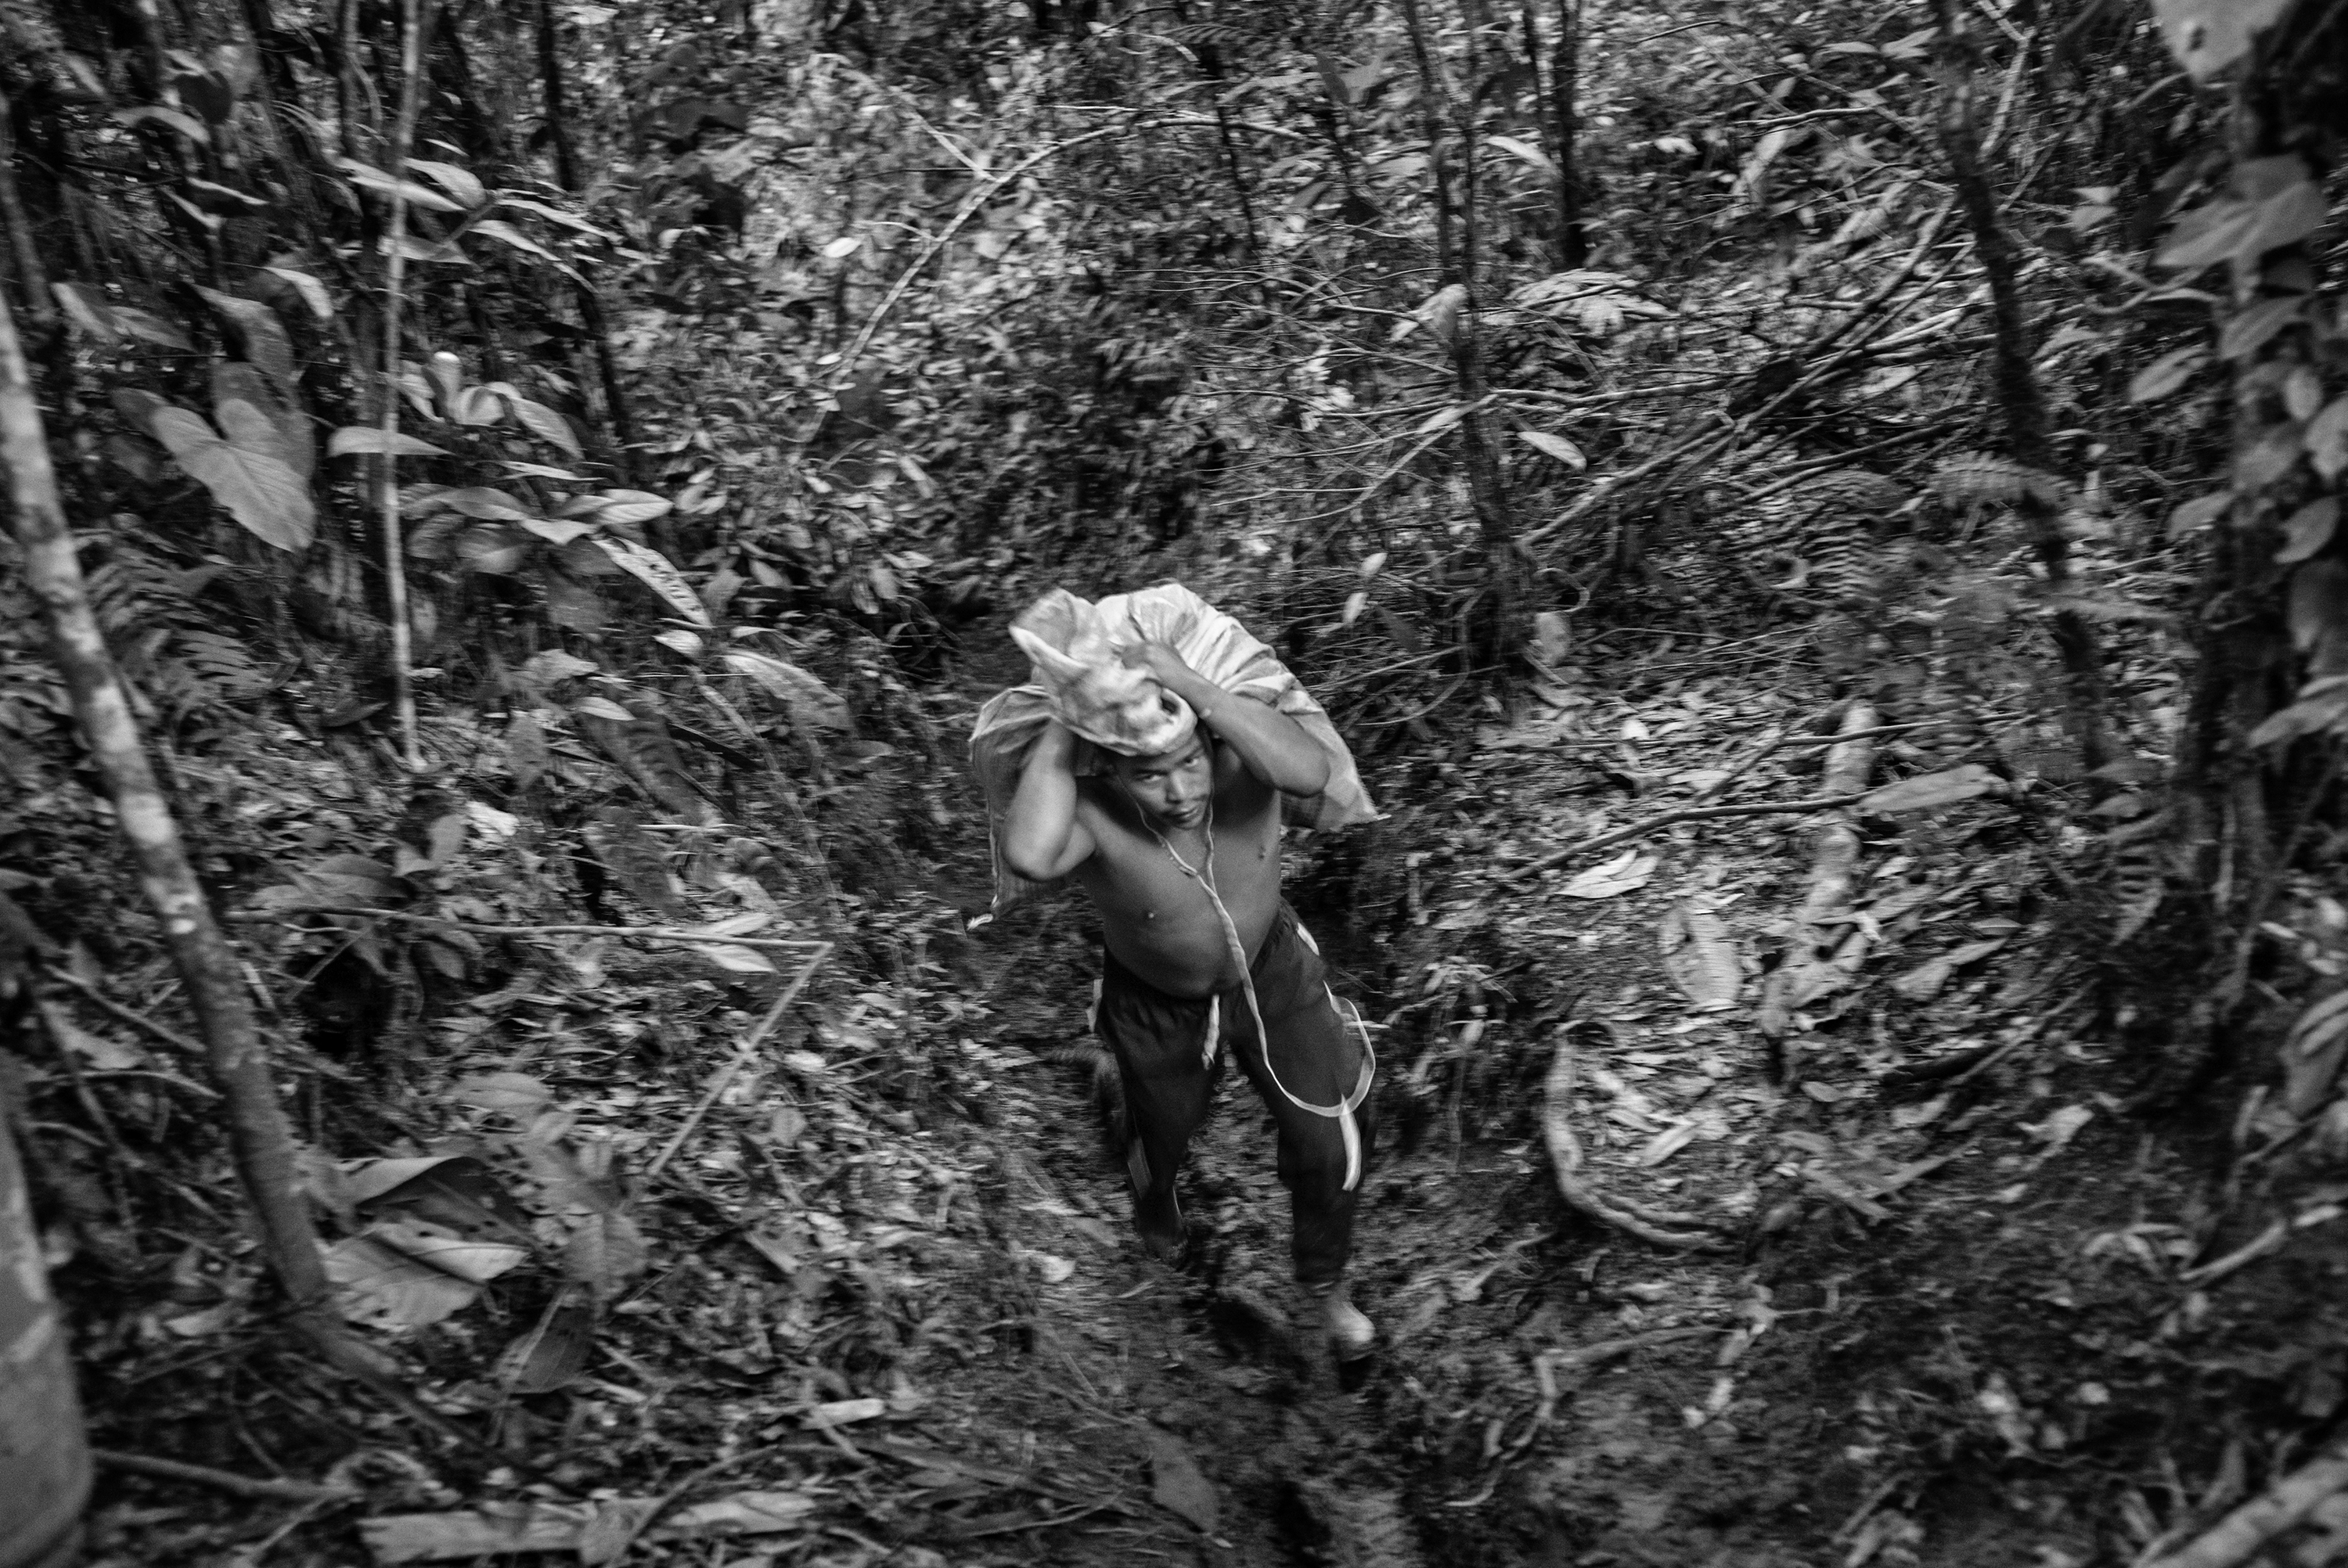 A guerrilla member of the FARC carries supplies to a camp, Cauca, Colombia, July 2016.